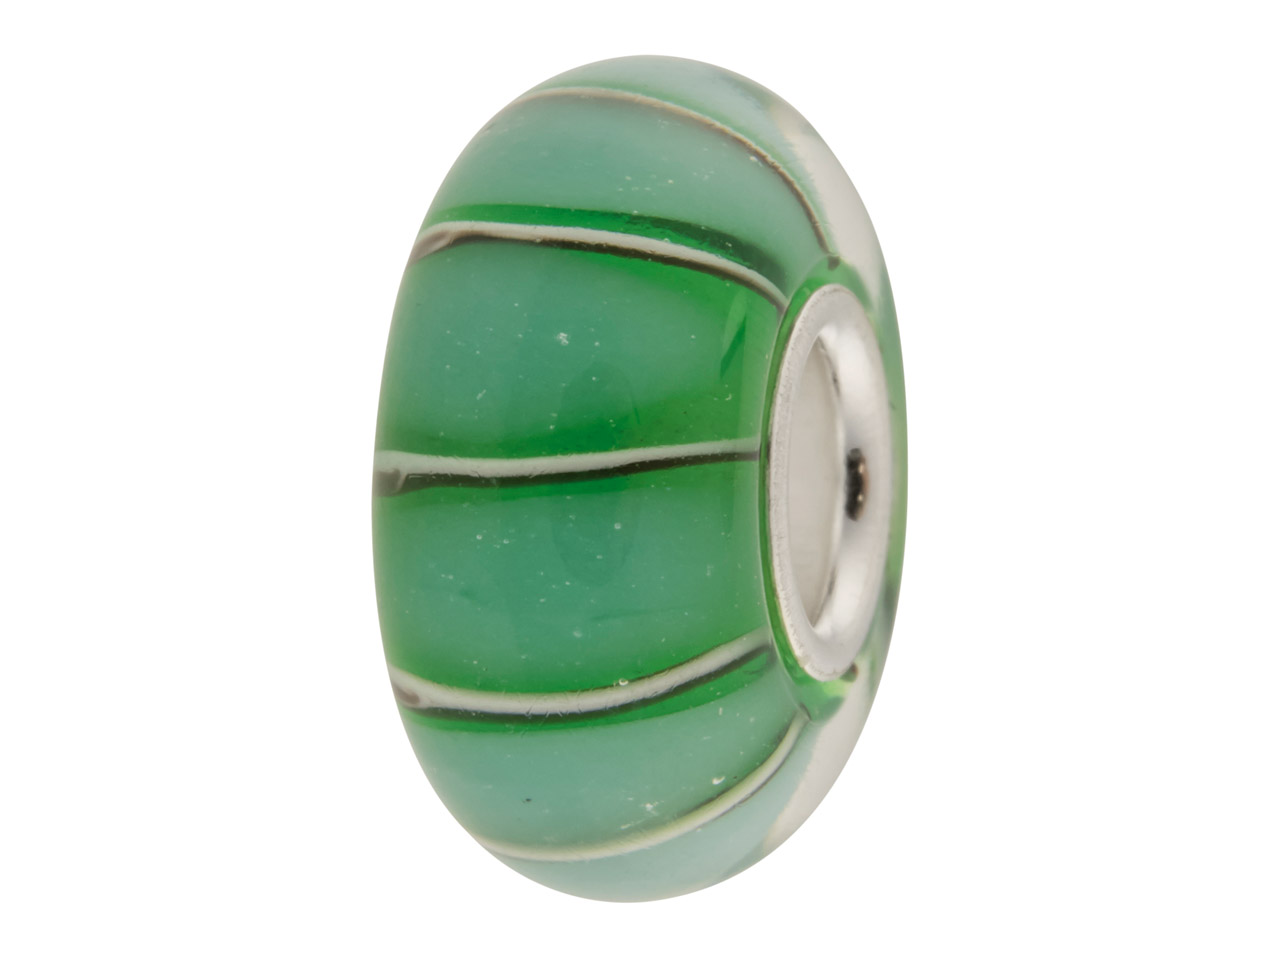 Glass Charm Bead, Green Thick      Stripes, Sterling Silver Core